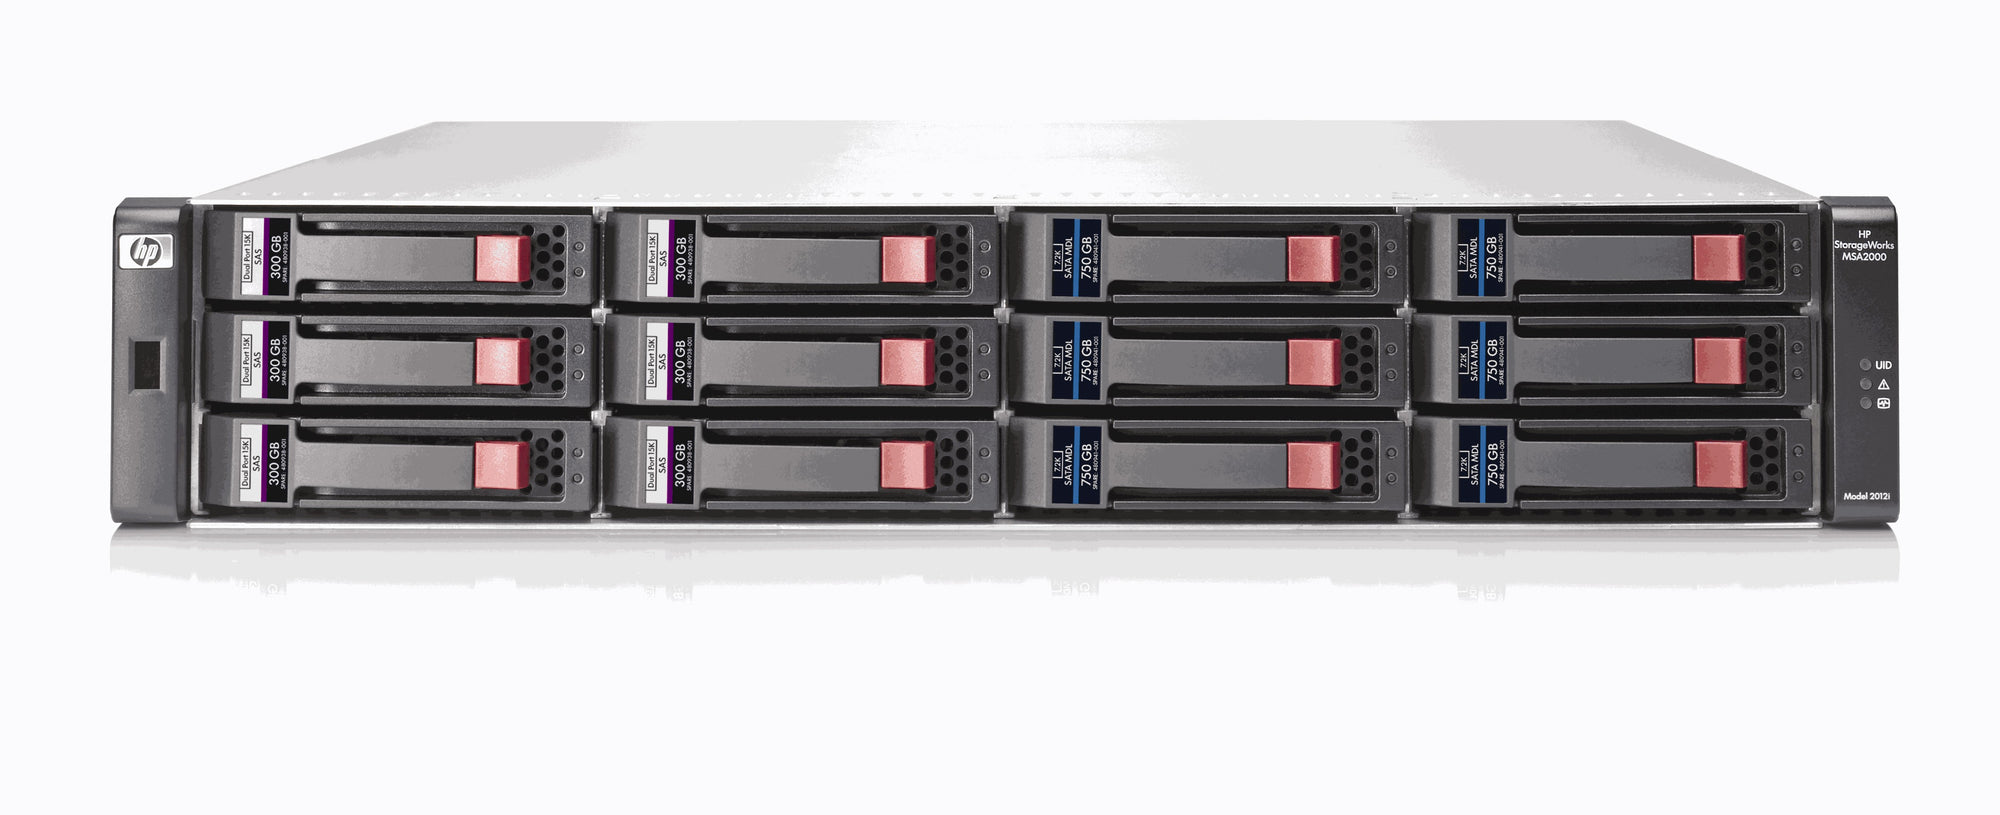 AJ948A - HPE 2012 3.5-inch Drive Bay Chassis